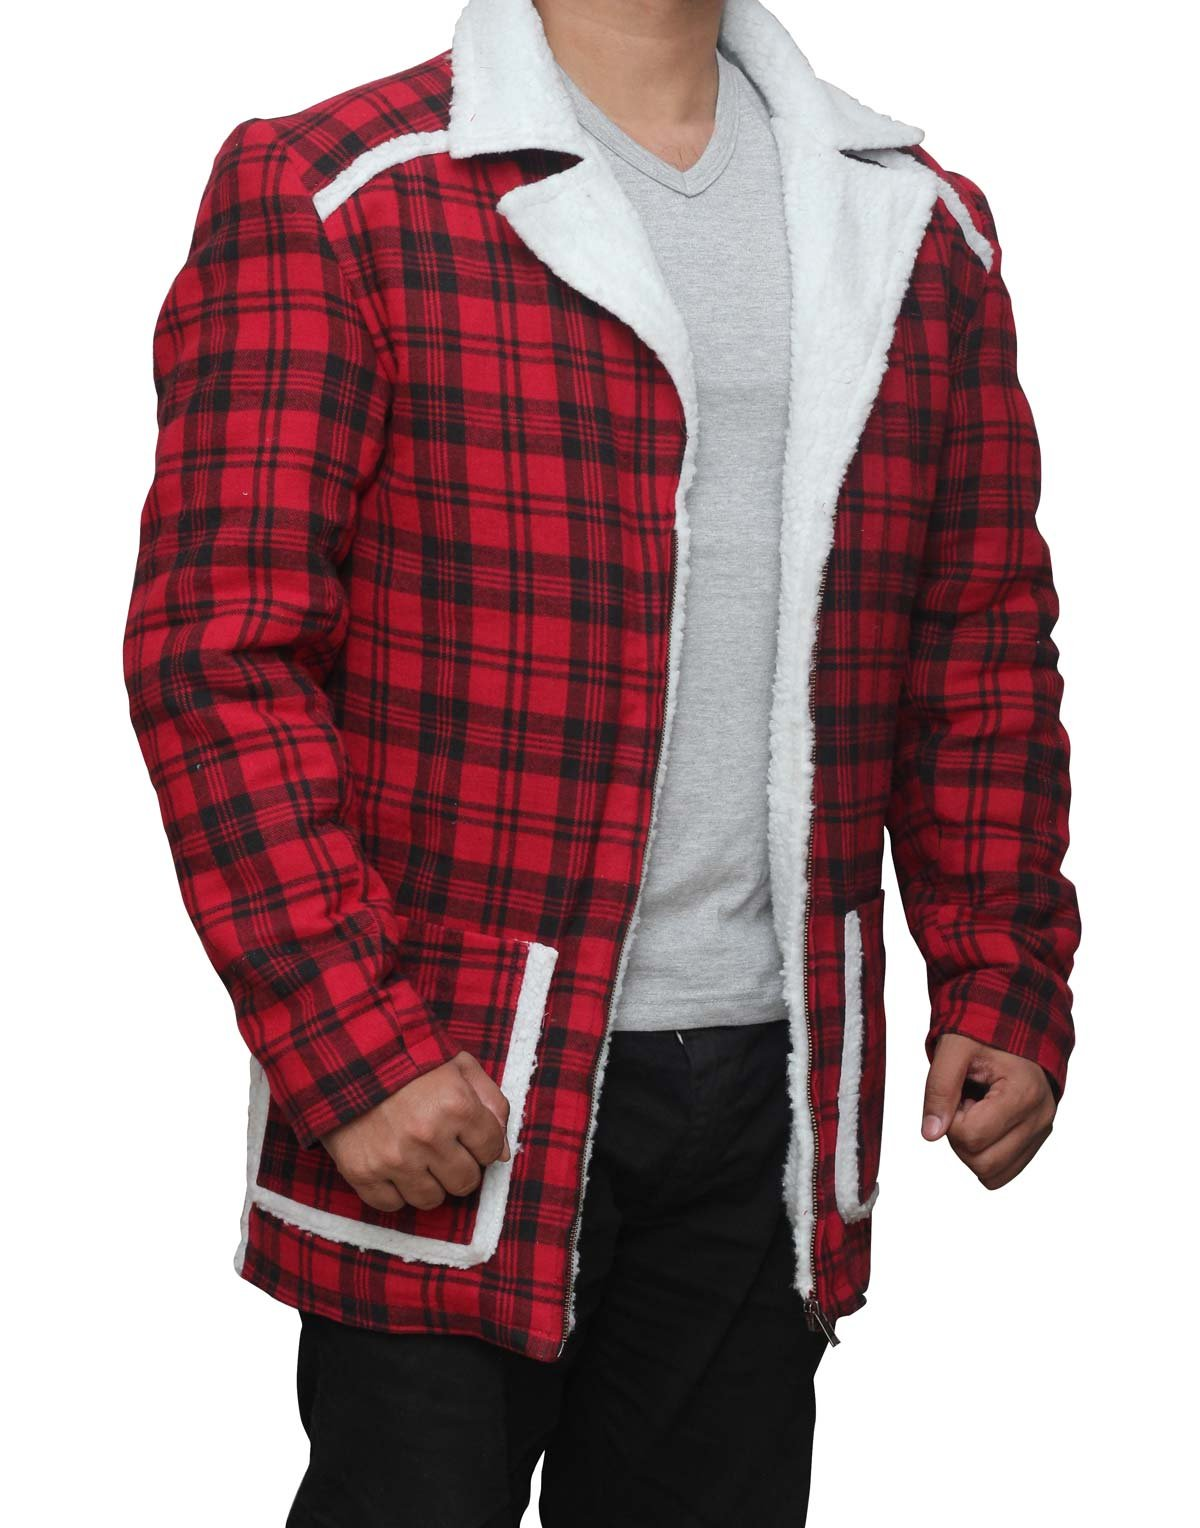 Deadpool Ryan Reynolds Red cotton flannel Shearling Jacket 3XL by fjackets (Image #3)